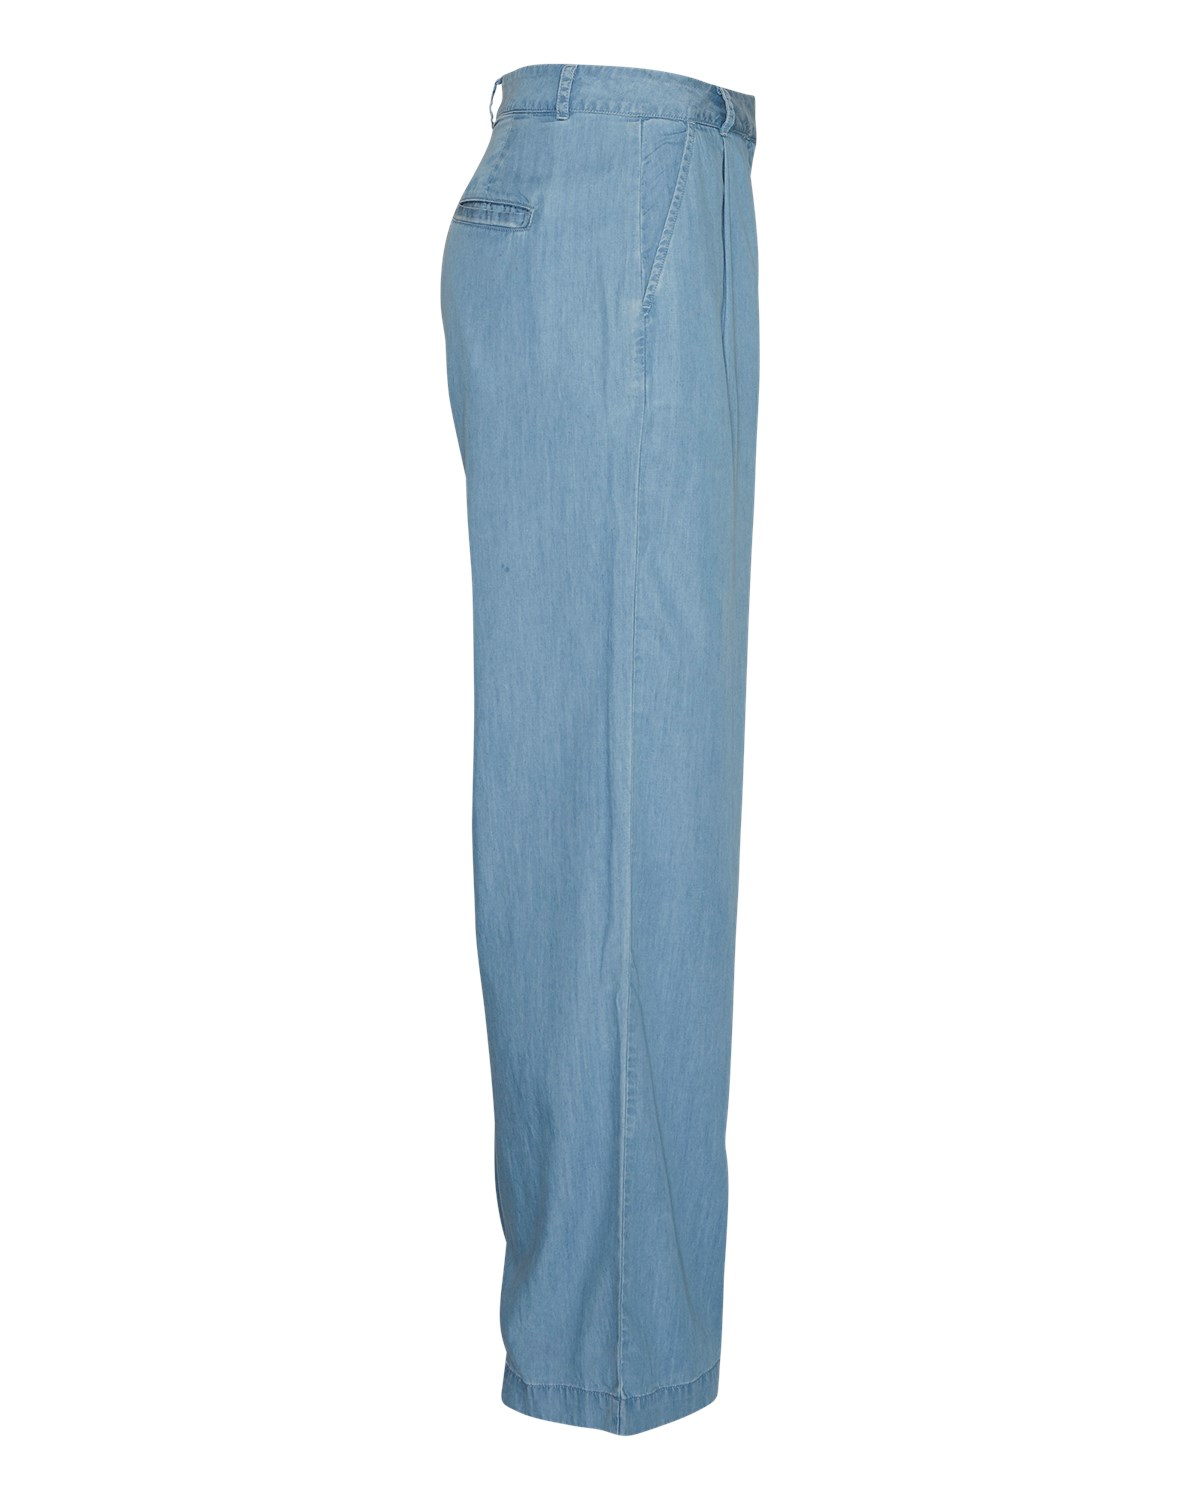 gallery-3712-for-15990-L blue wash